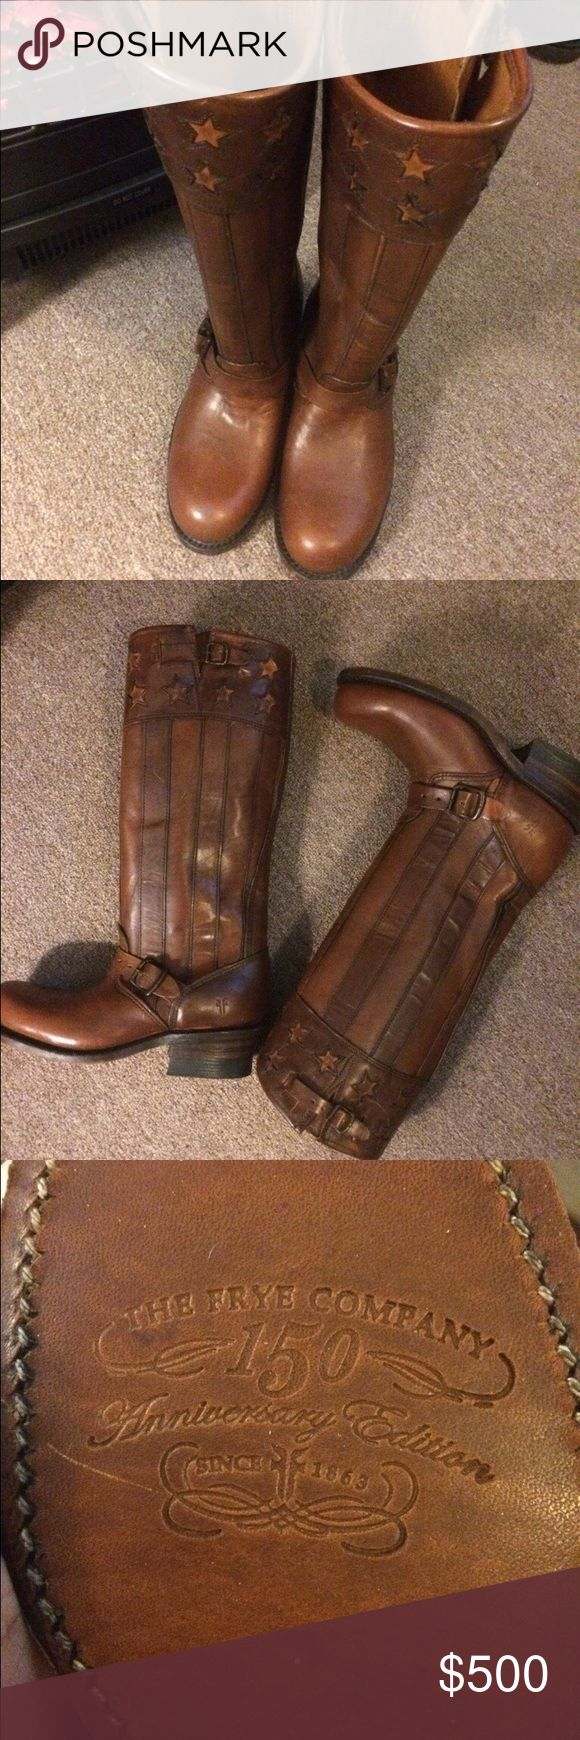 Brown frye knee boots frye limited addition stars and stripes boots 7 1/2 frye Shoes Heeled Boots